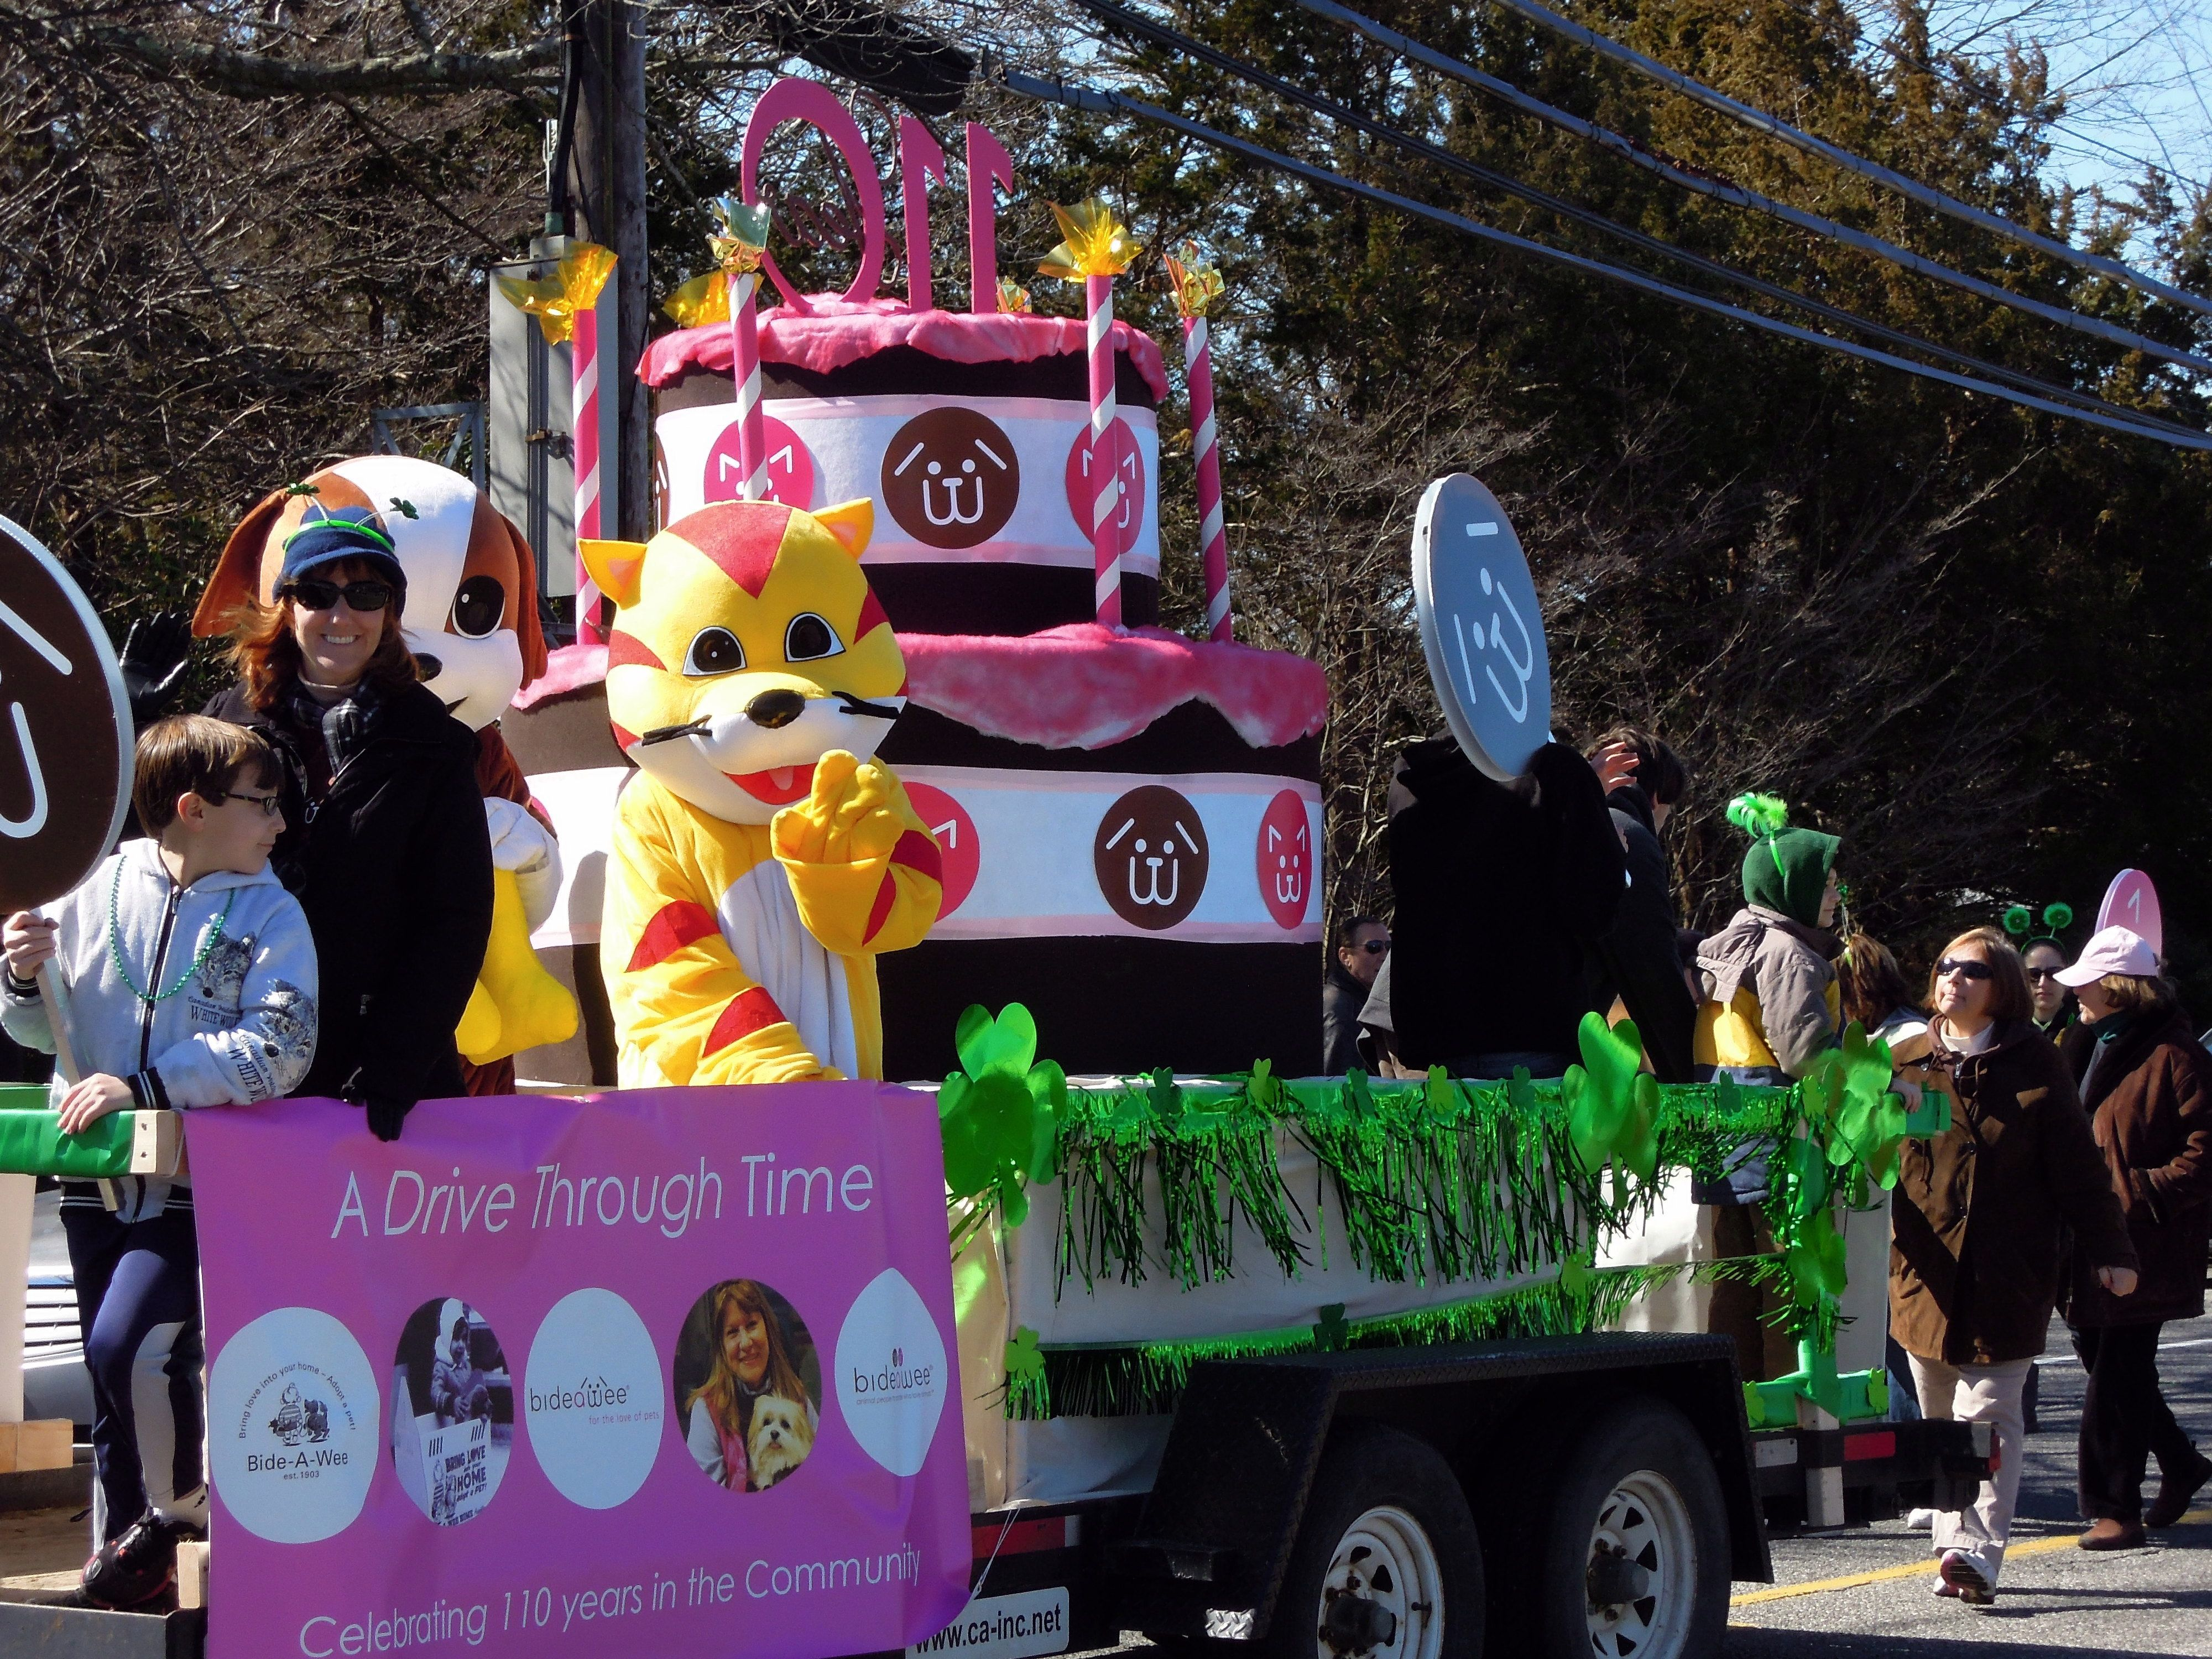 Bideawee Marched Into The 46th Annual Westhampton St Patrick S Day Parade In March Bideawee S Float Ce Christmas Parade Floats Parade Float Christmas Parade